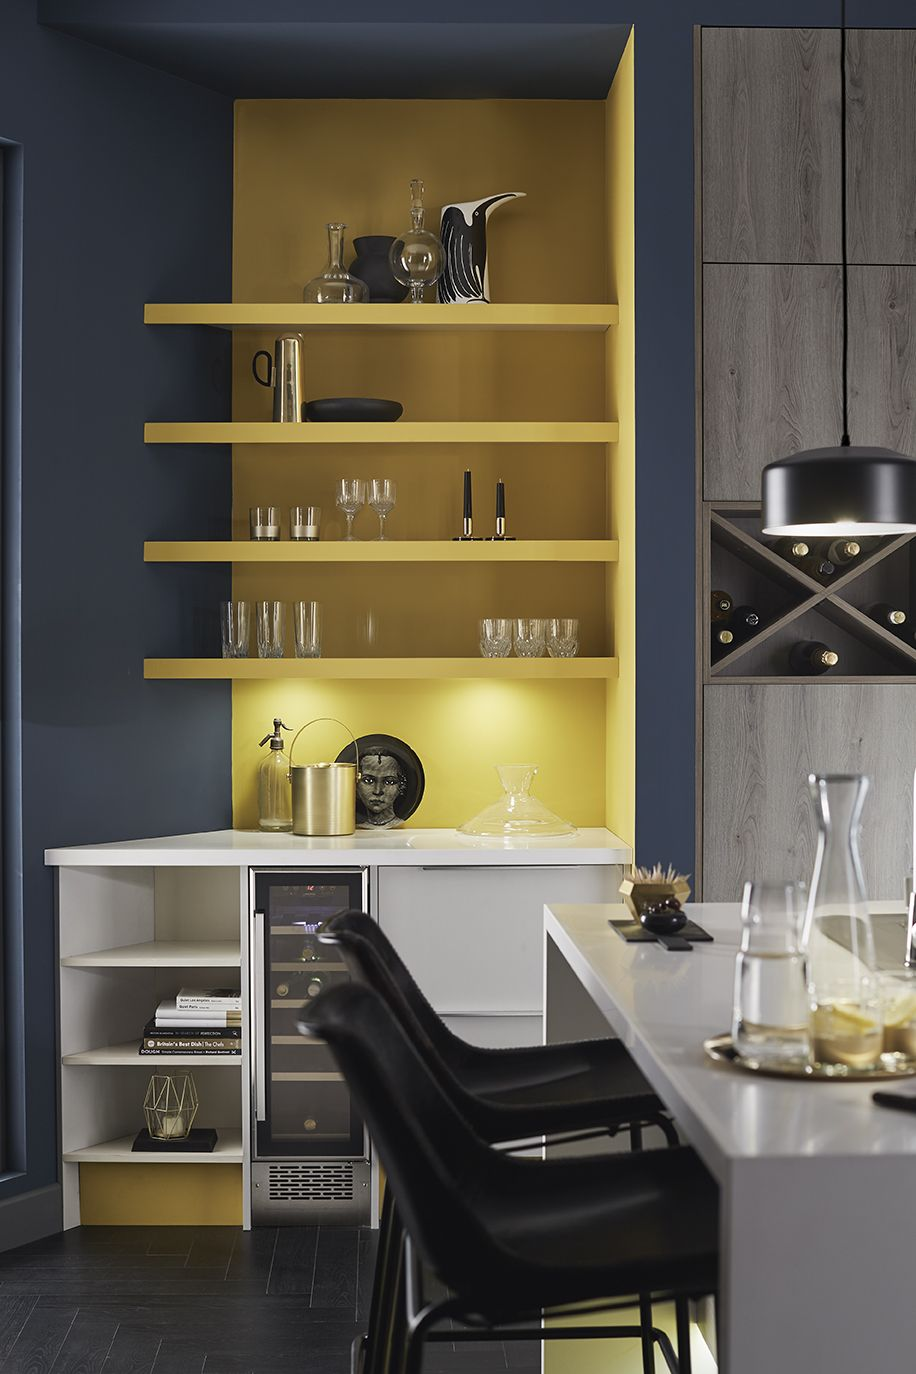 Best Howdens With Images Free Kitchen Design Kitchen And 400 x 300